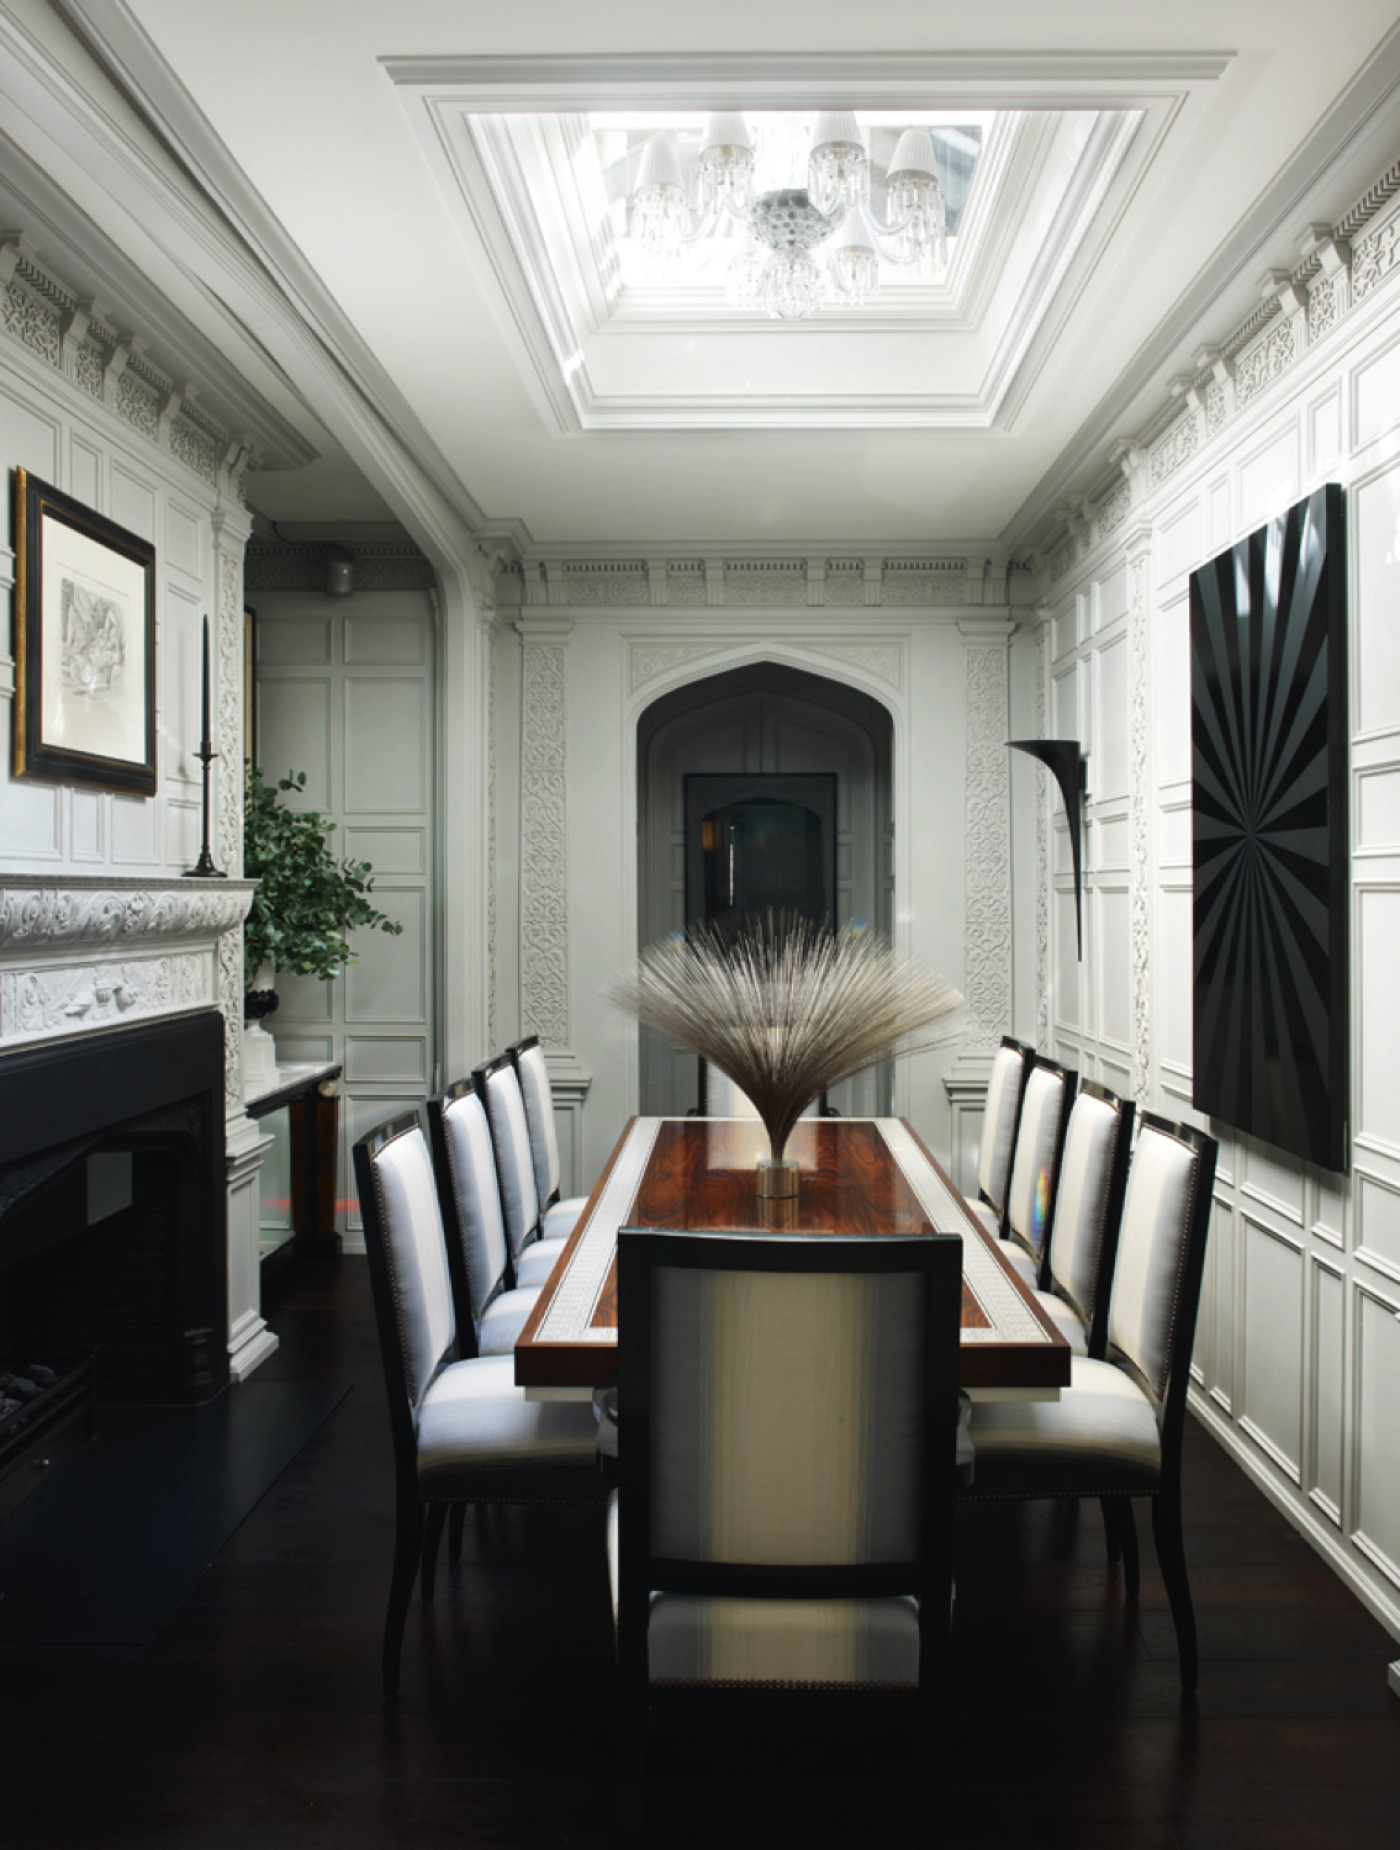 Elegant Regents Park dining room with elaborate molding by Hubert Zandberg Interiors